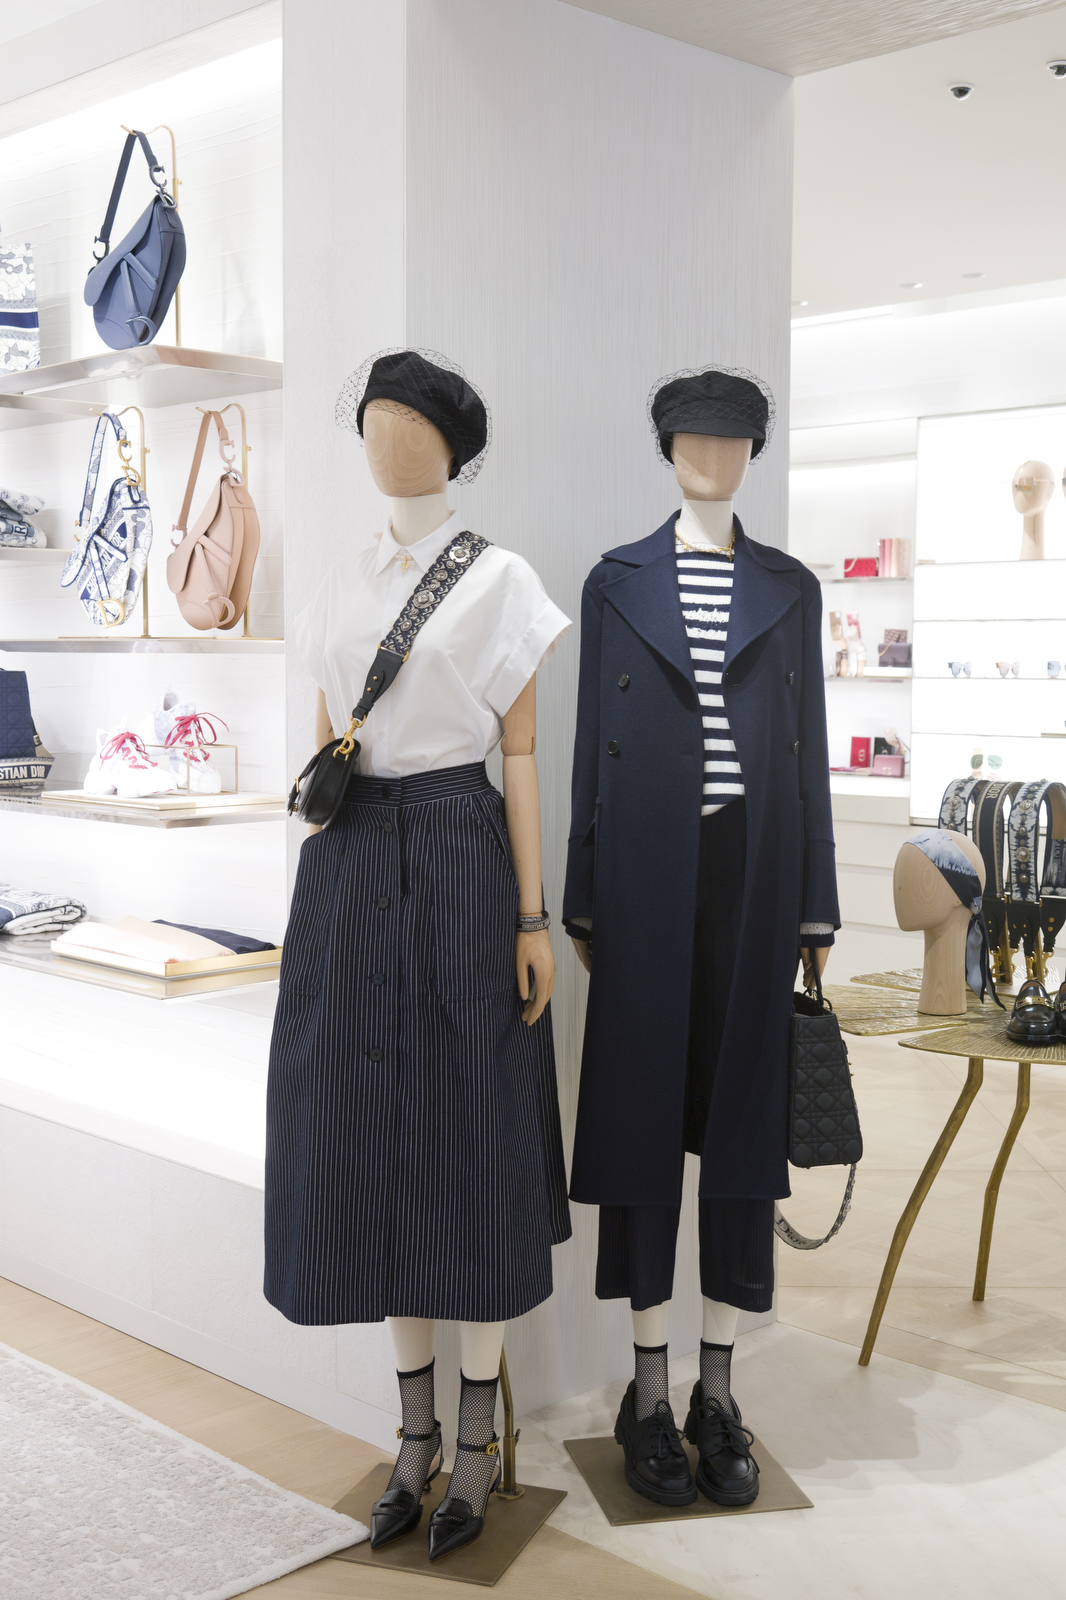 Mannequins in nautical styles greet shoppers on the main floor.